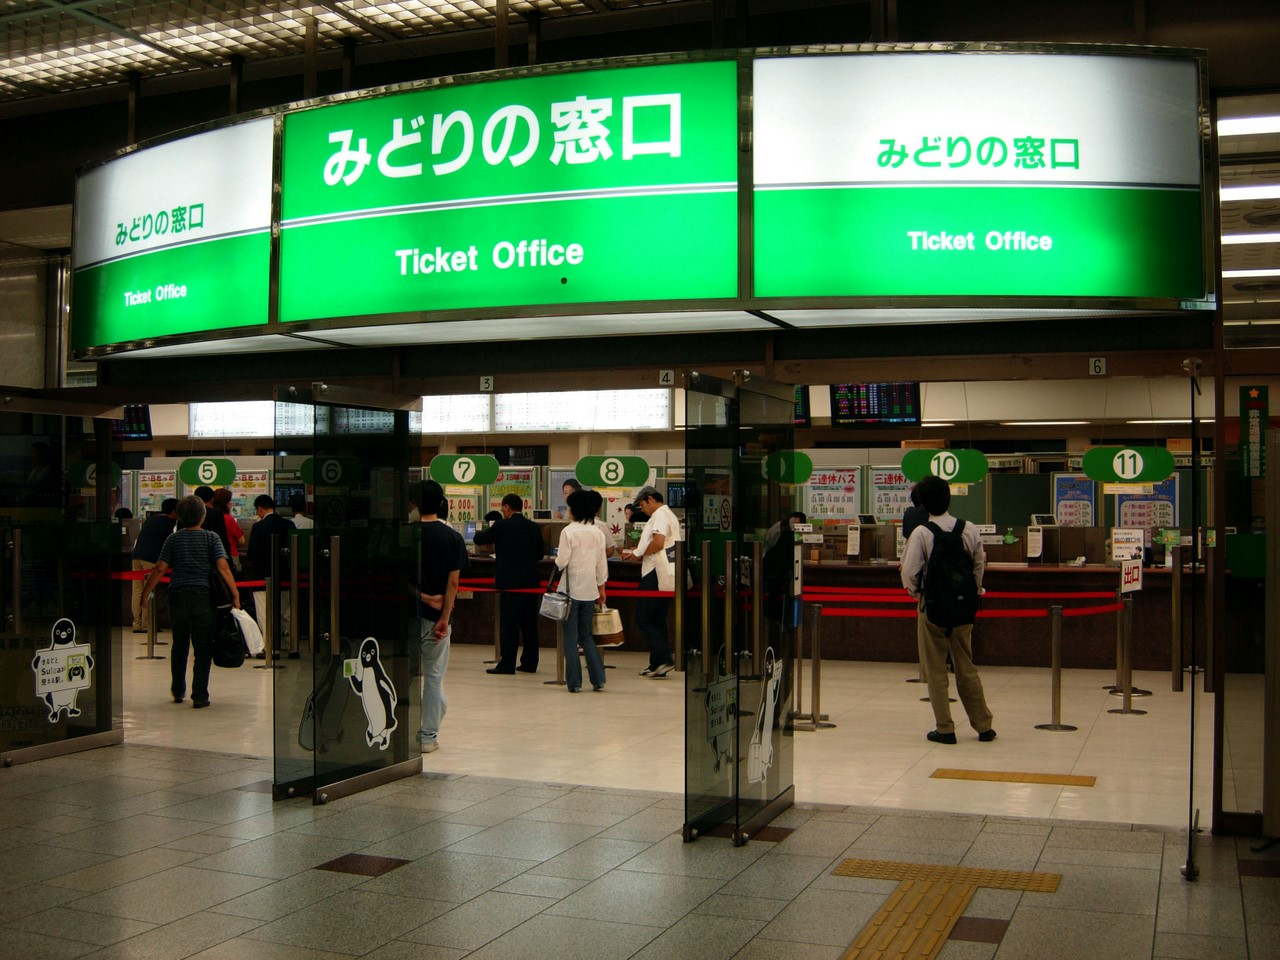 How to reserve a seat of Japan Railway trains. How about online reservation available?